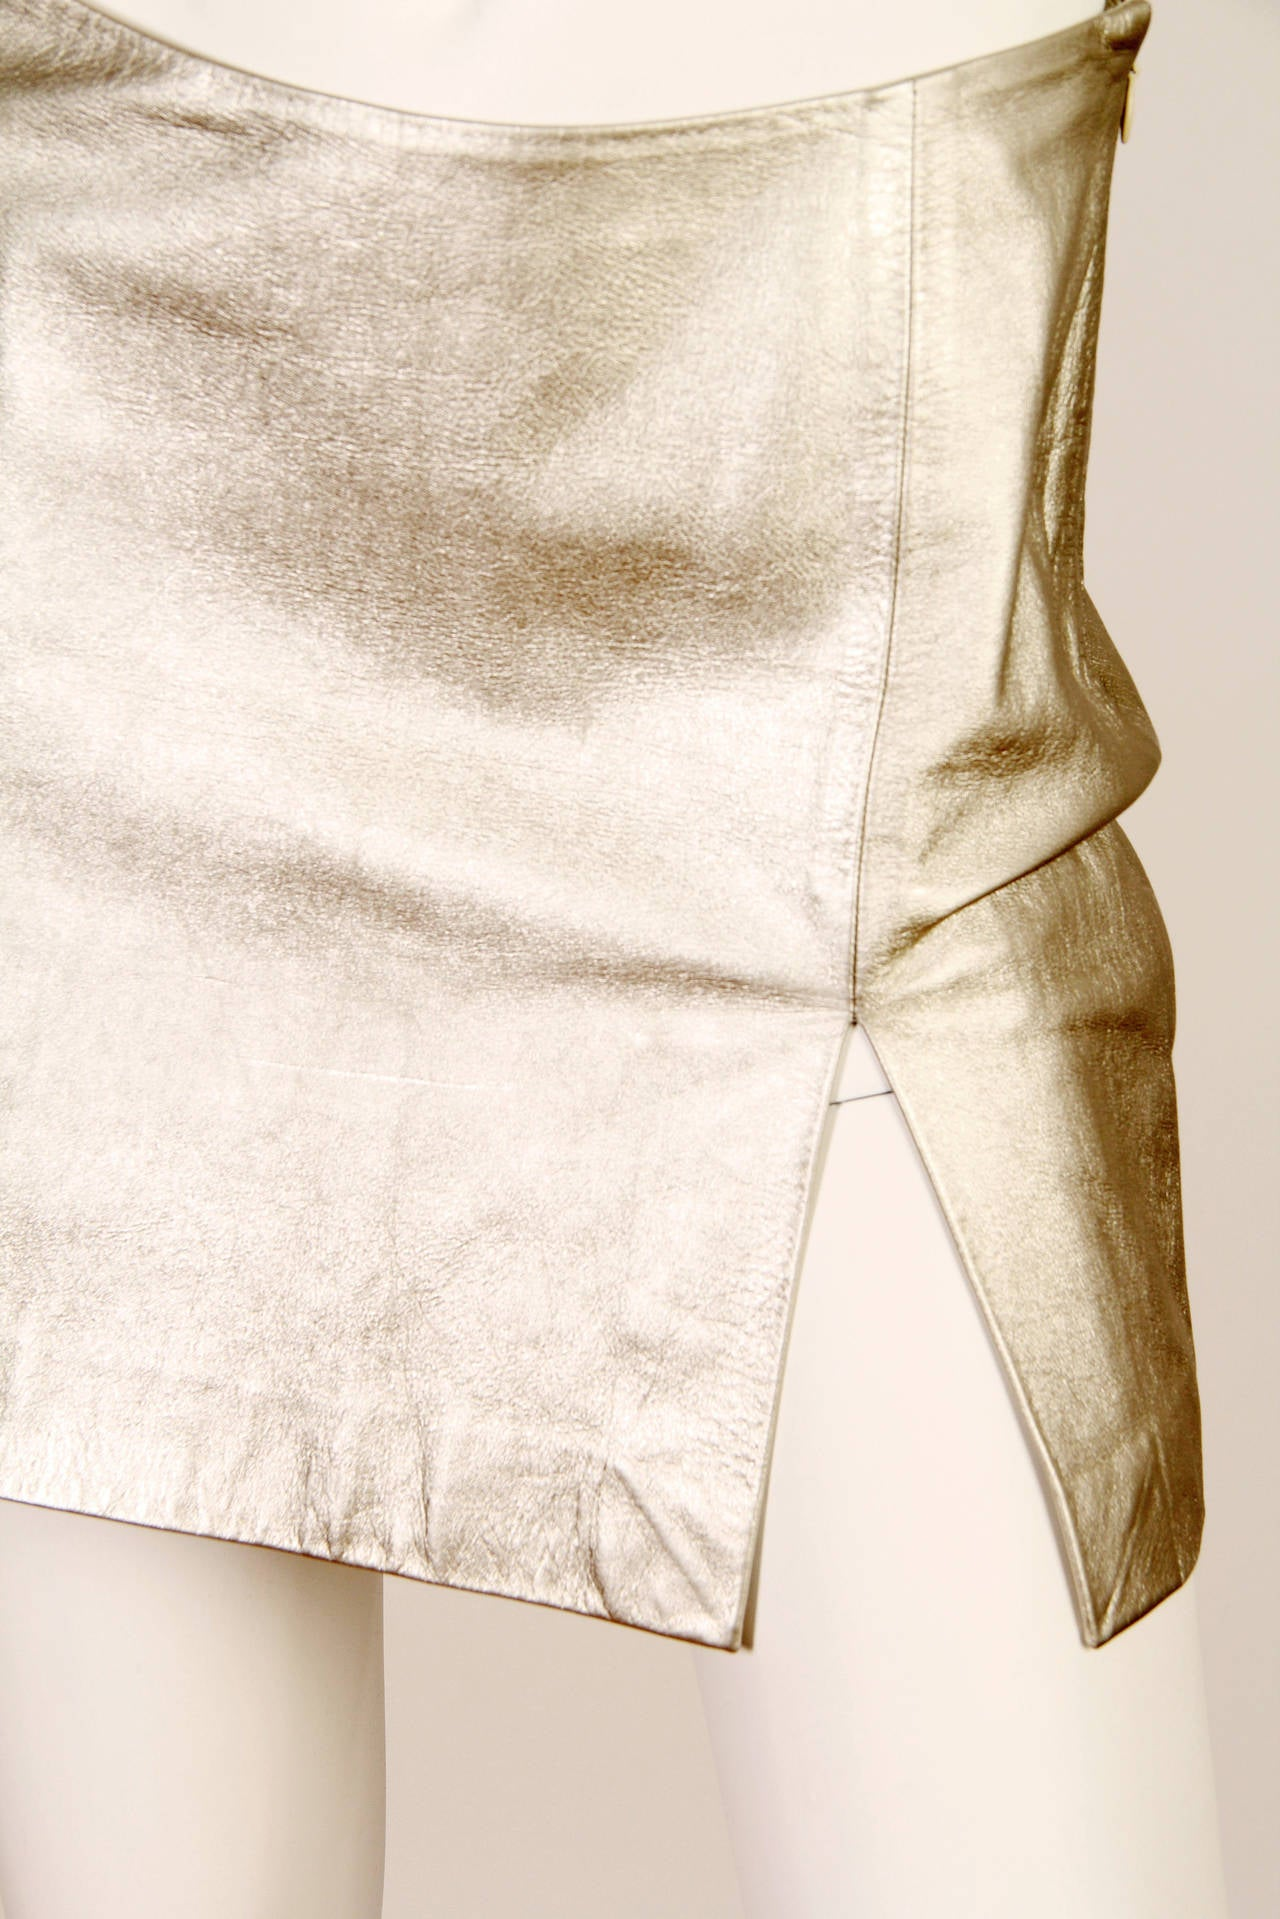 Iconic Documented 1994 Supermodel Gianni Versace Couture Silver Leather Skirt For Sale 1